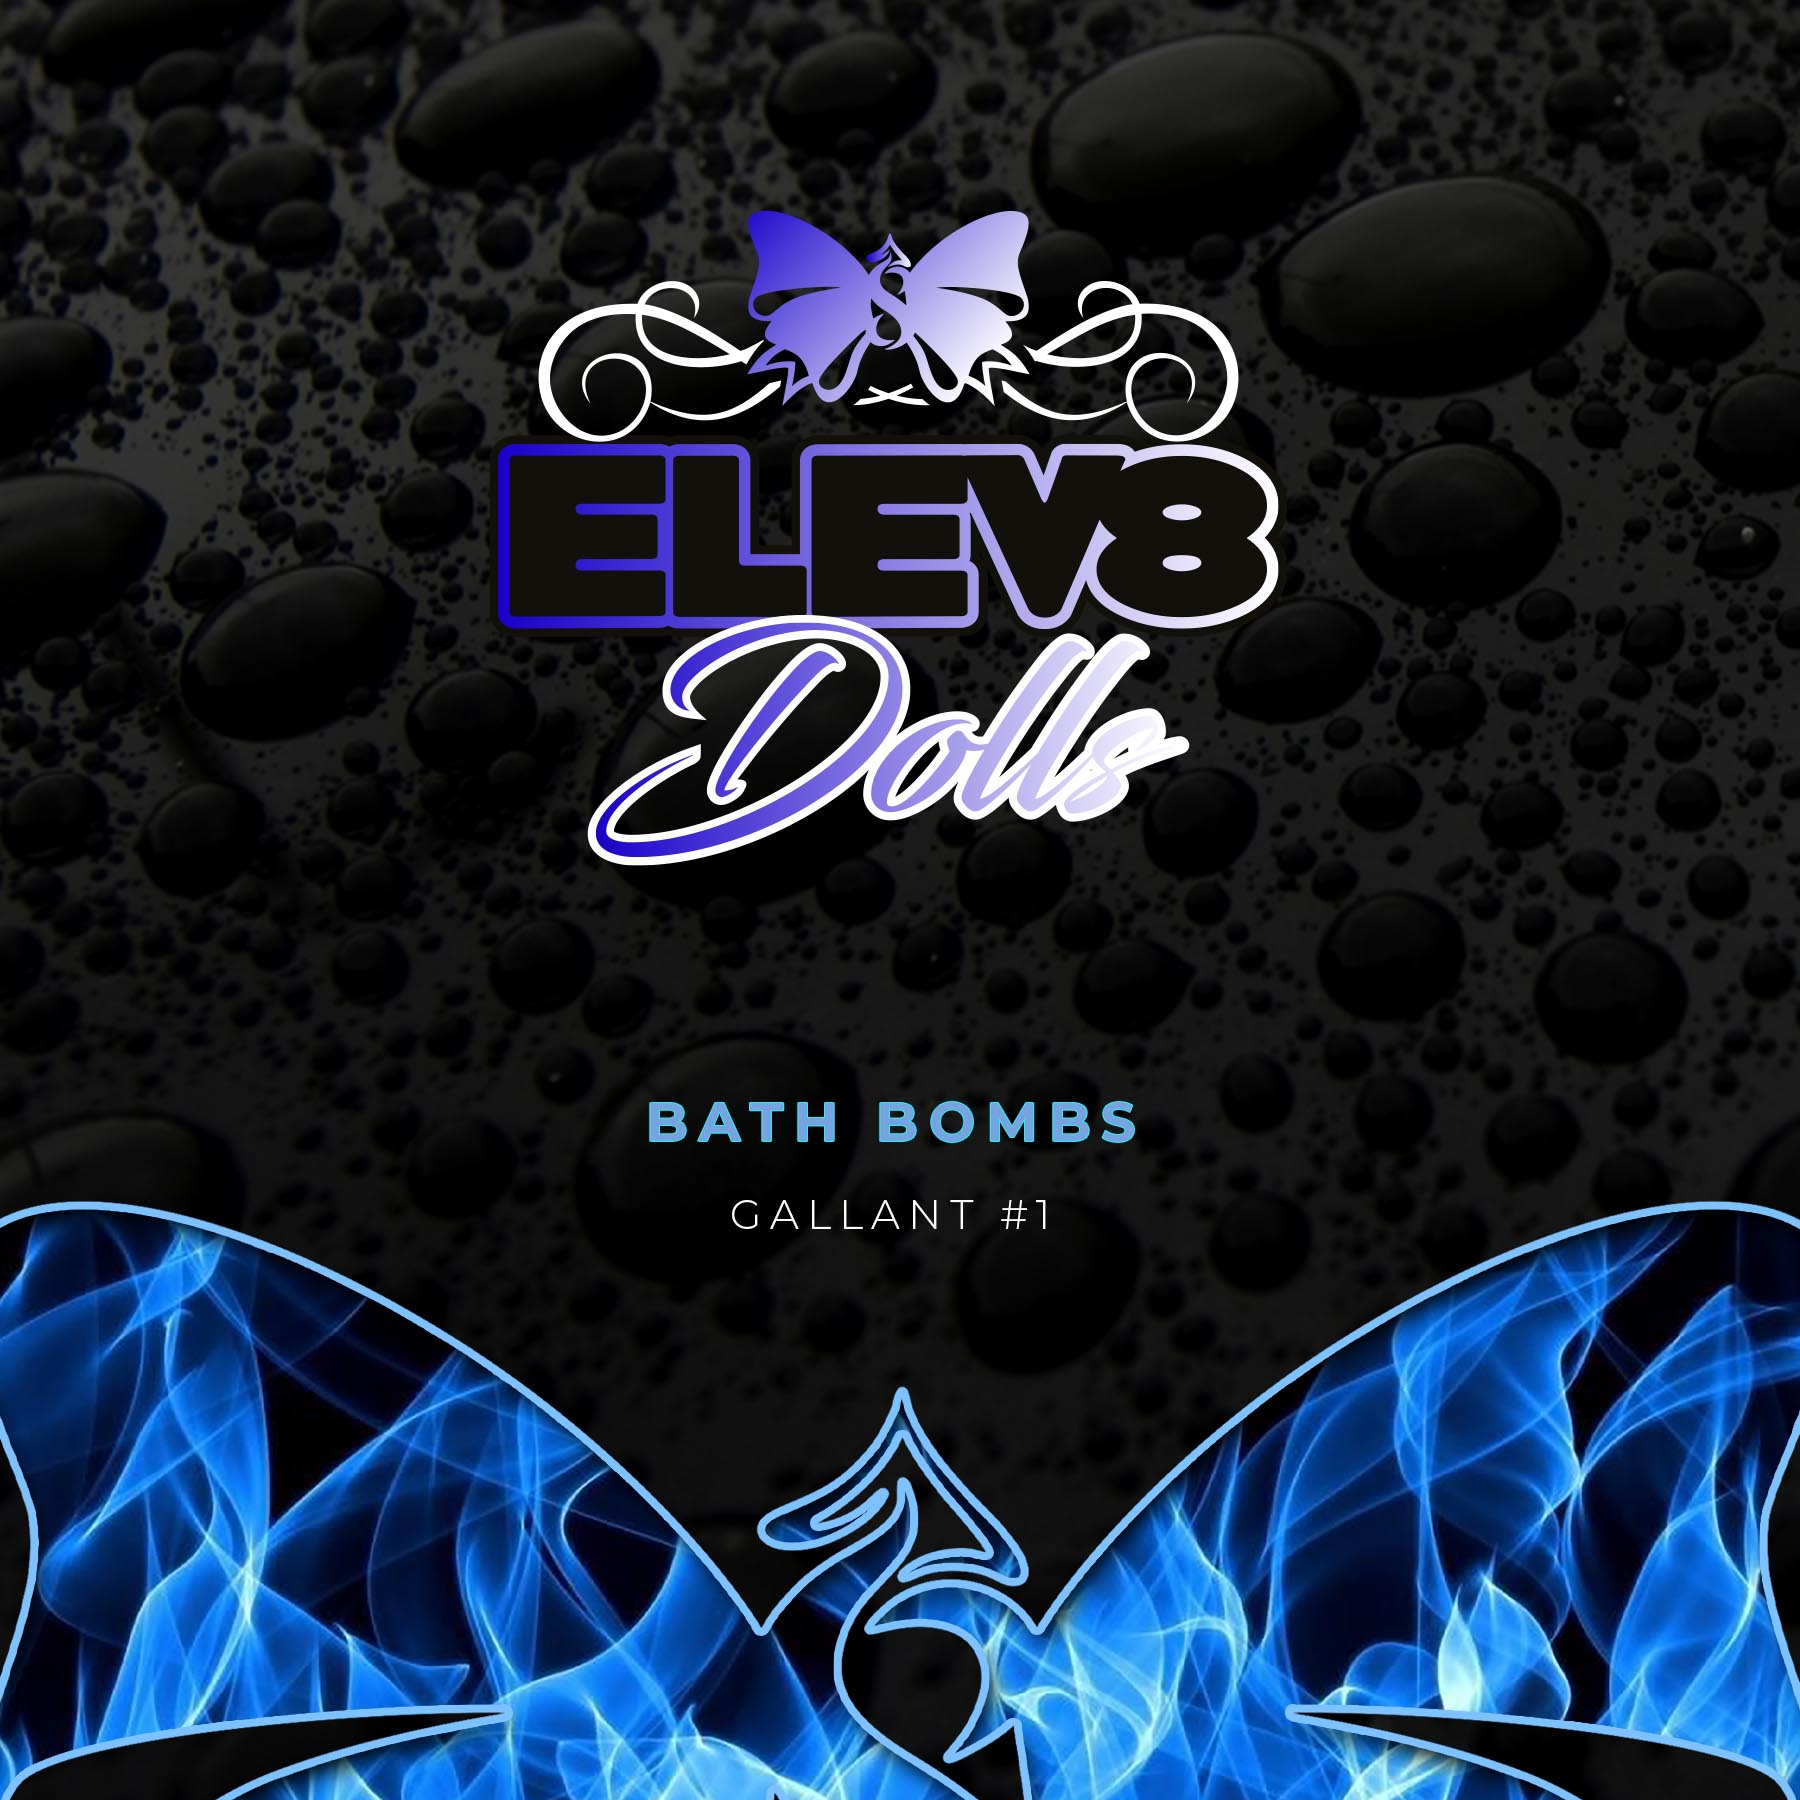 gallant-1-elev8-doll-bath-bomb.jpg